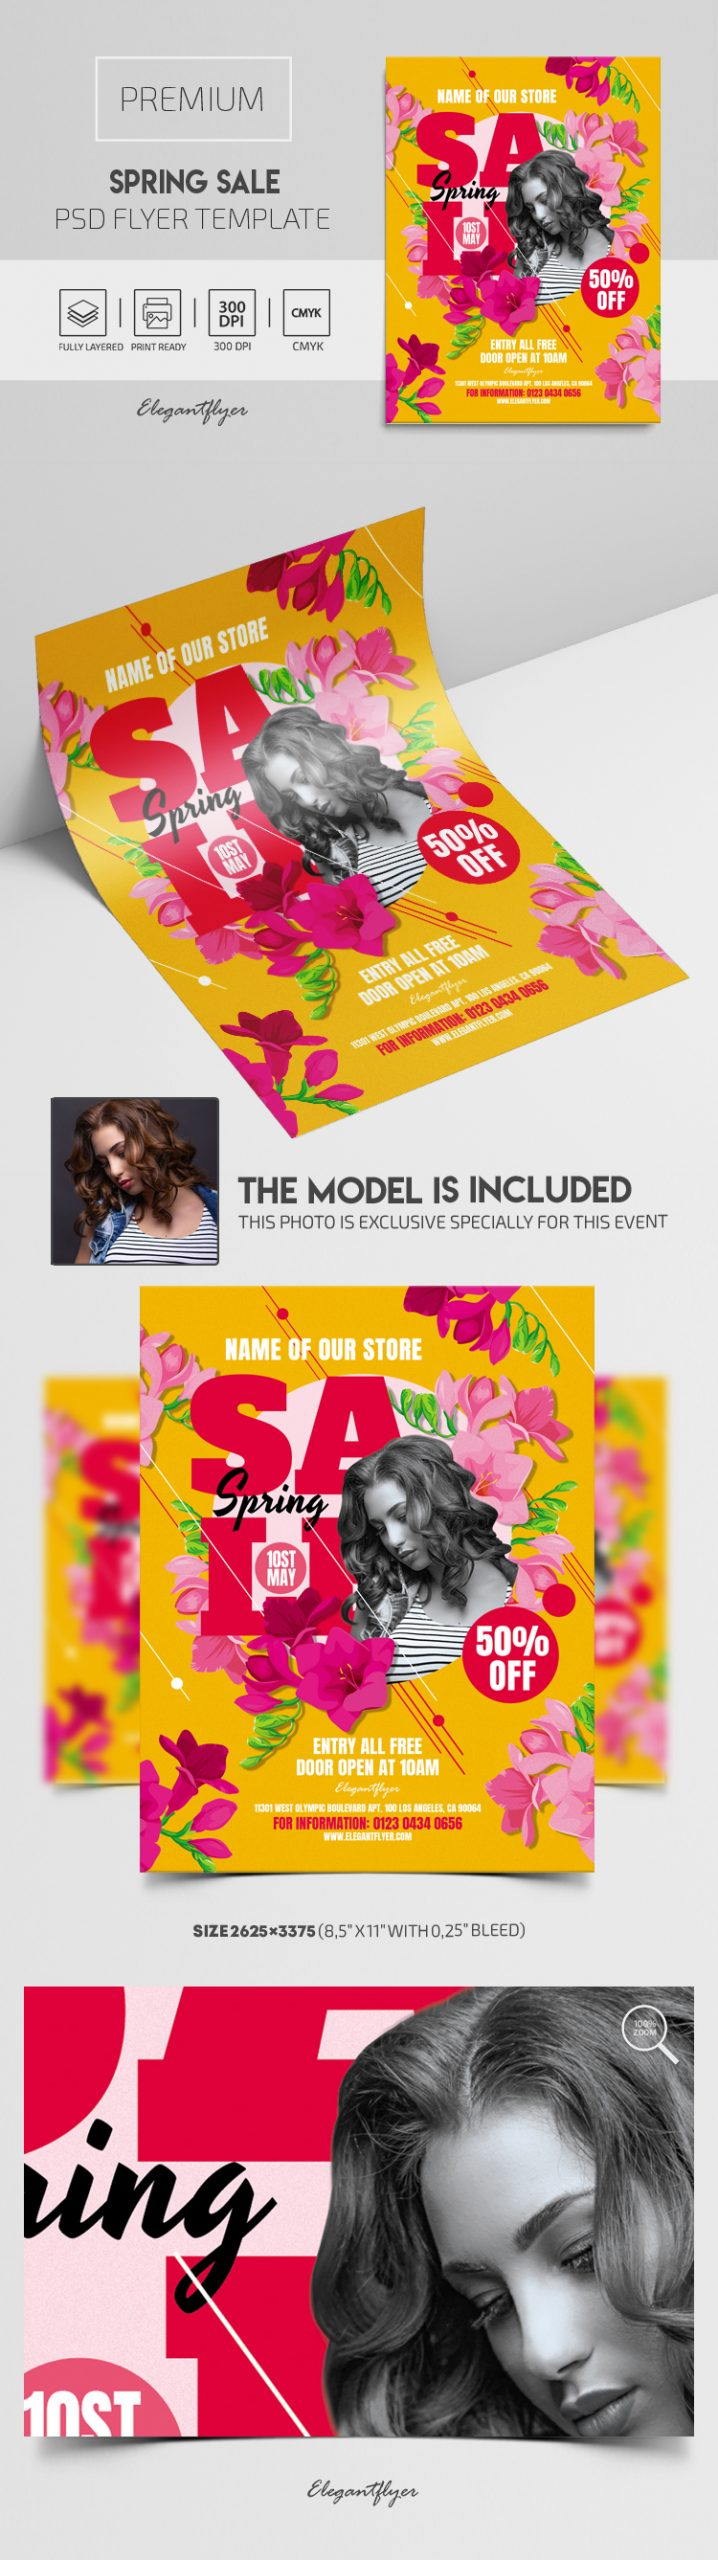 Spring Sale – Premium PSD Flyer Template